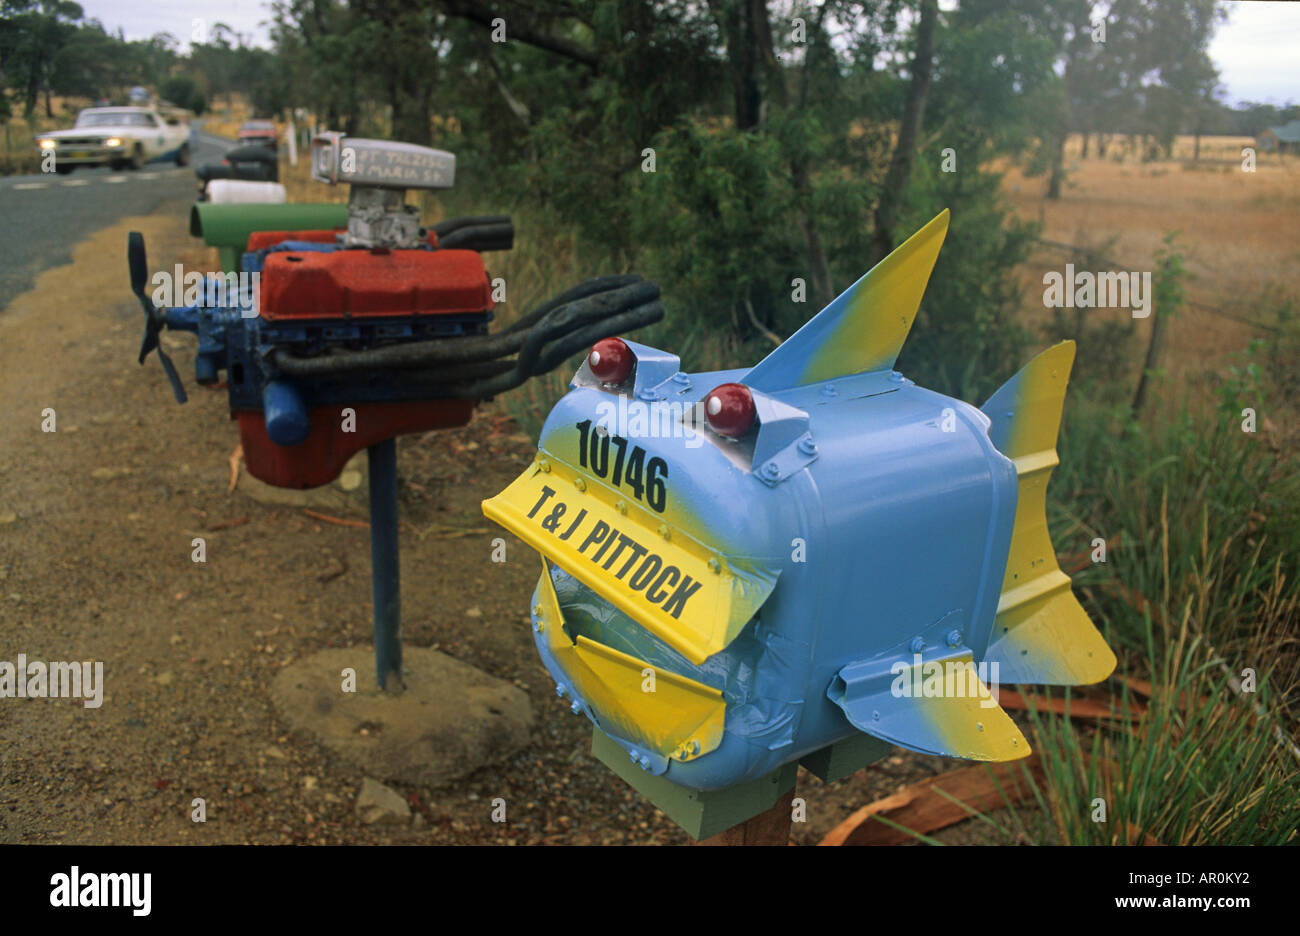 Funny mailboxes, Nullarbor, South Australia, Australia - Stock Image